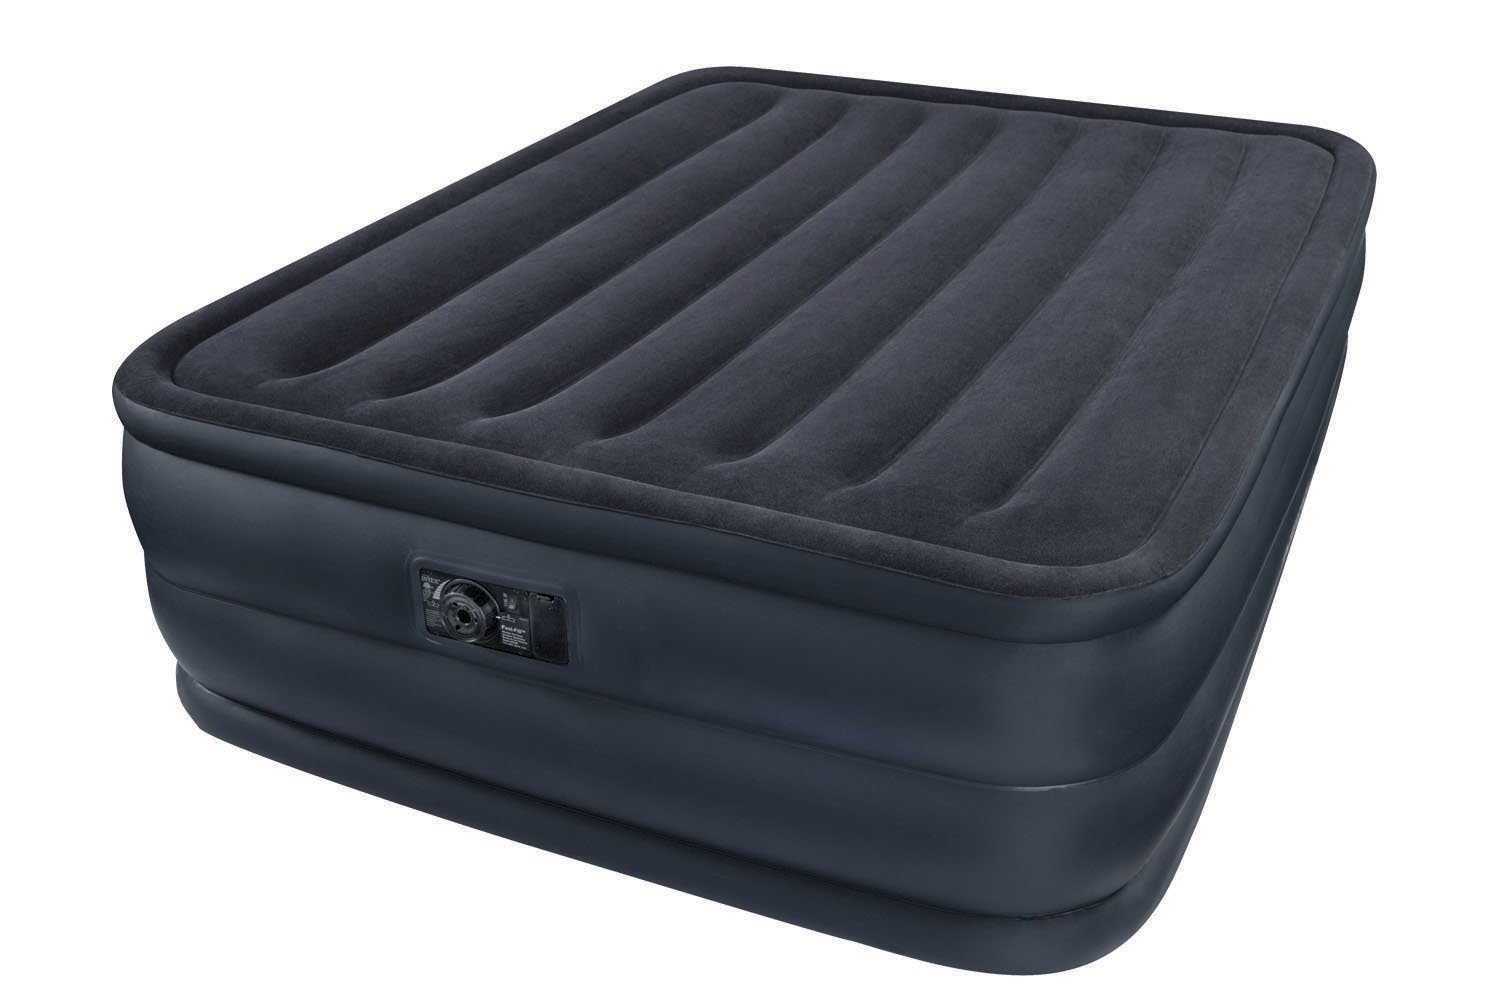 Intex Airbed 60 Quot X 80 Quot X 22 Quot Queen Size Raised Downy